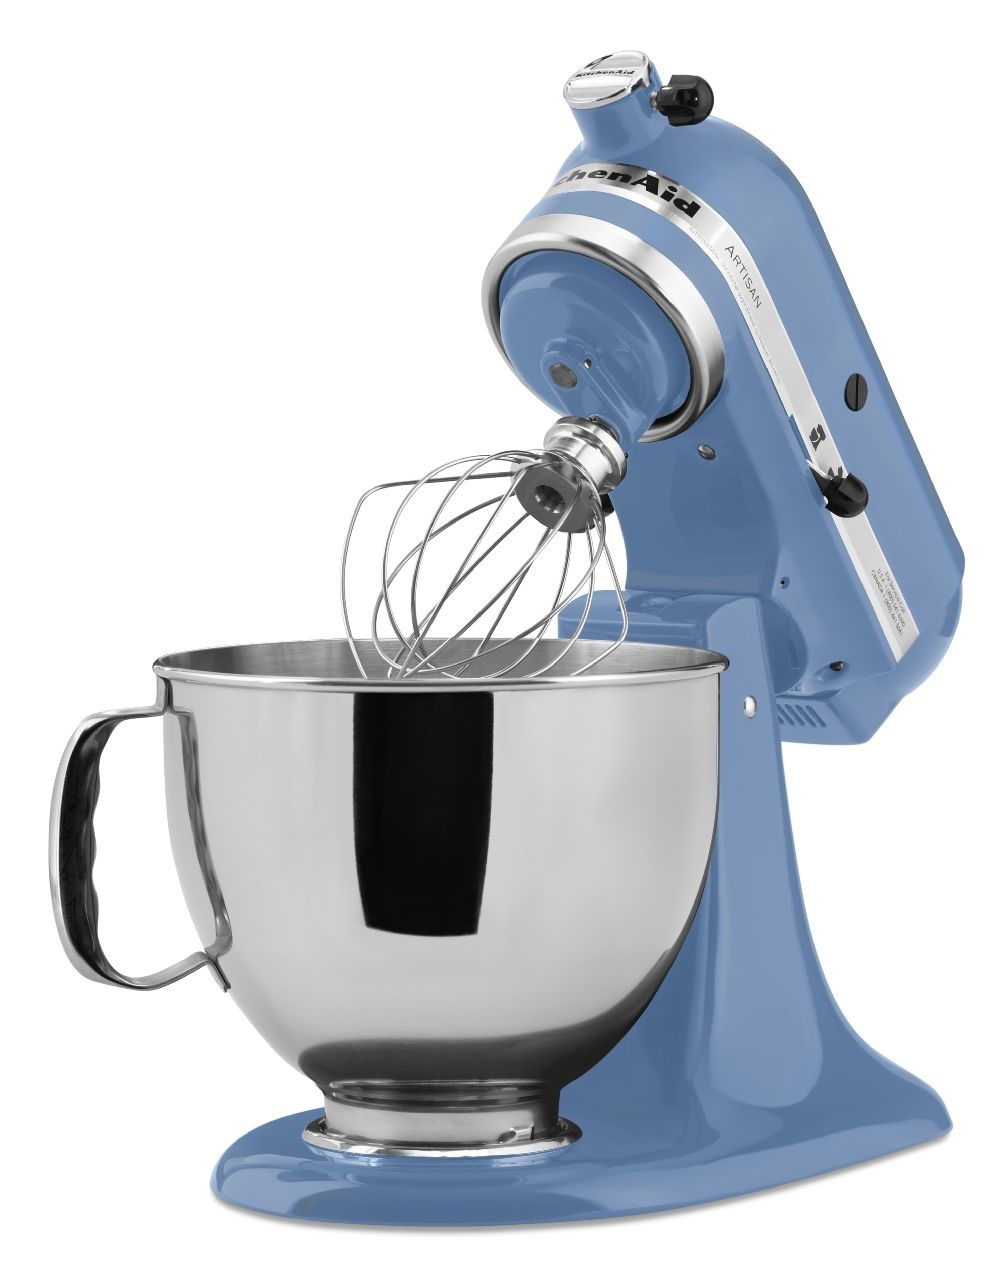 KitchenAid-Refurbished-Artisan-Series-5-Quart-Tilt-Head-Stand-Mixer-RRK150 thumbnail 40